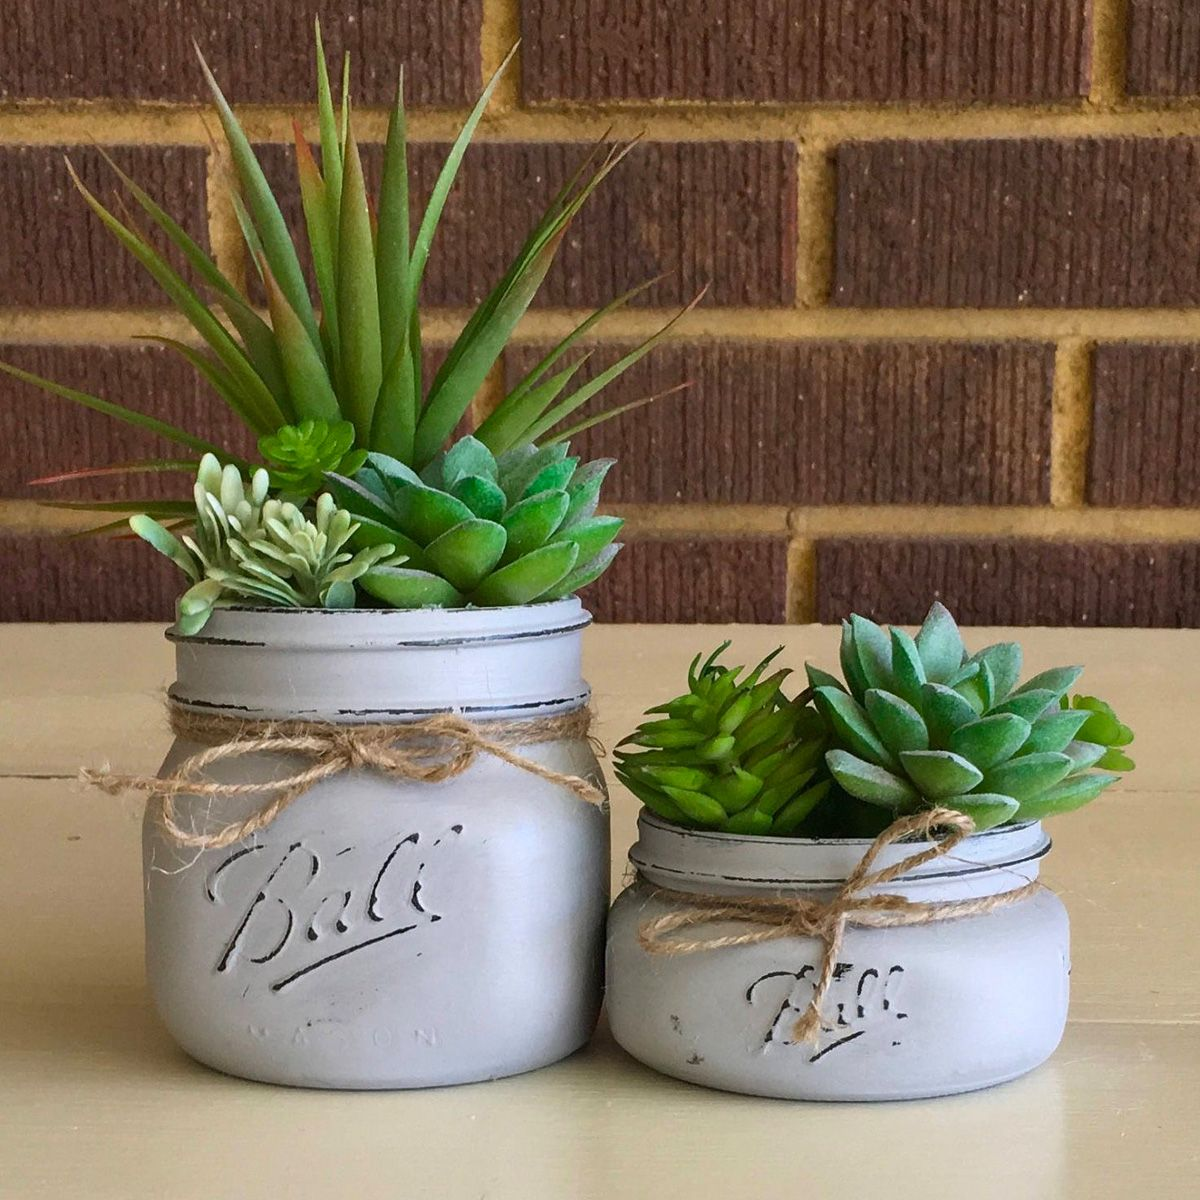 35 DIY Mason Jar Gift Ideas - Homemade Gifts in Mason Jars